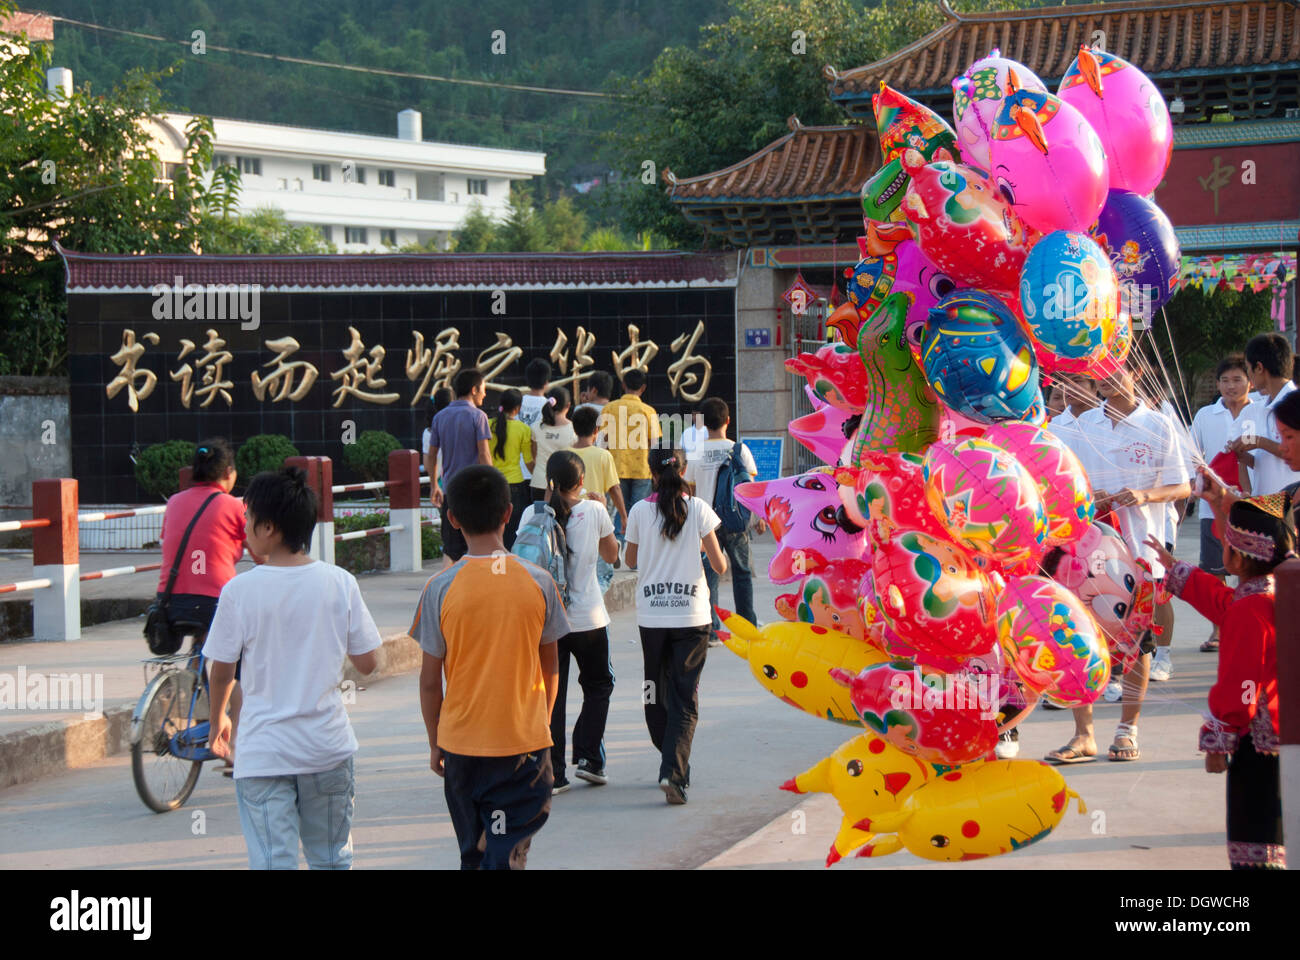 People walking along the street, kitsch, colourful balloons, Jiangcheng, Pu'er City, Yunnan Province, People's Republic of China - Stock Image